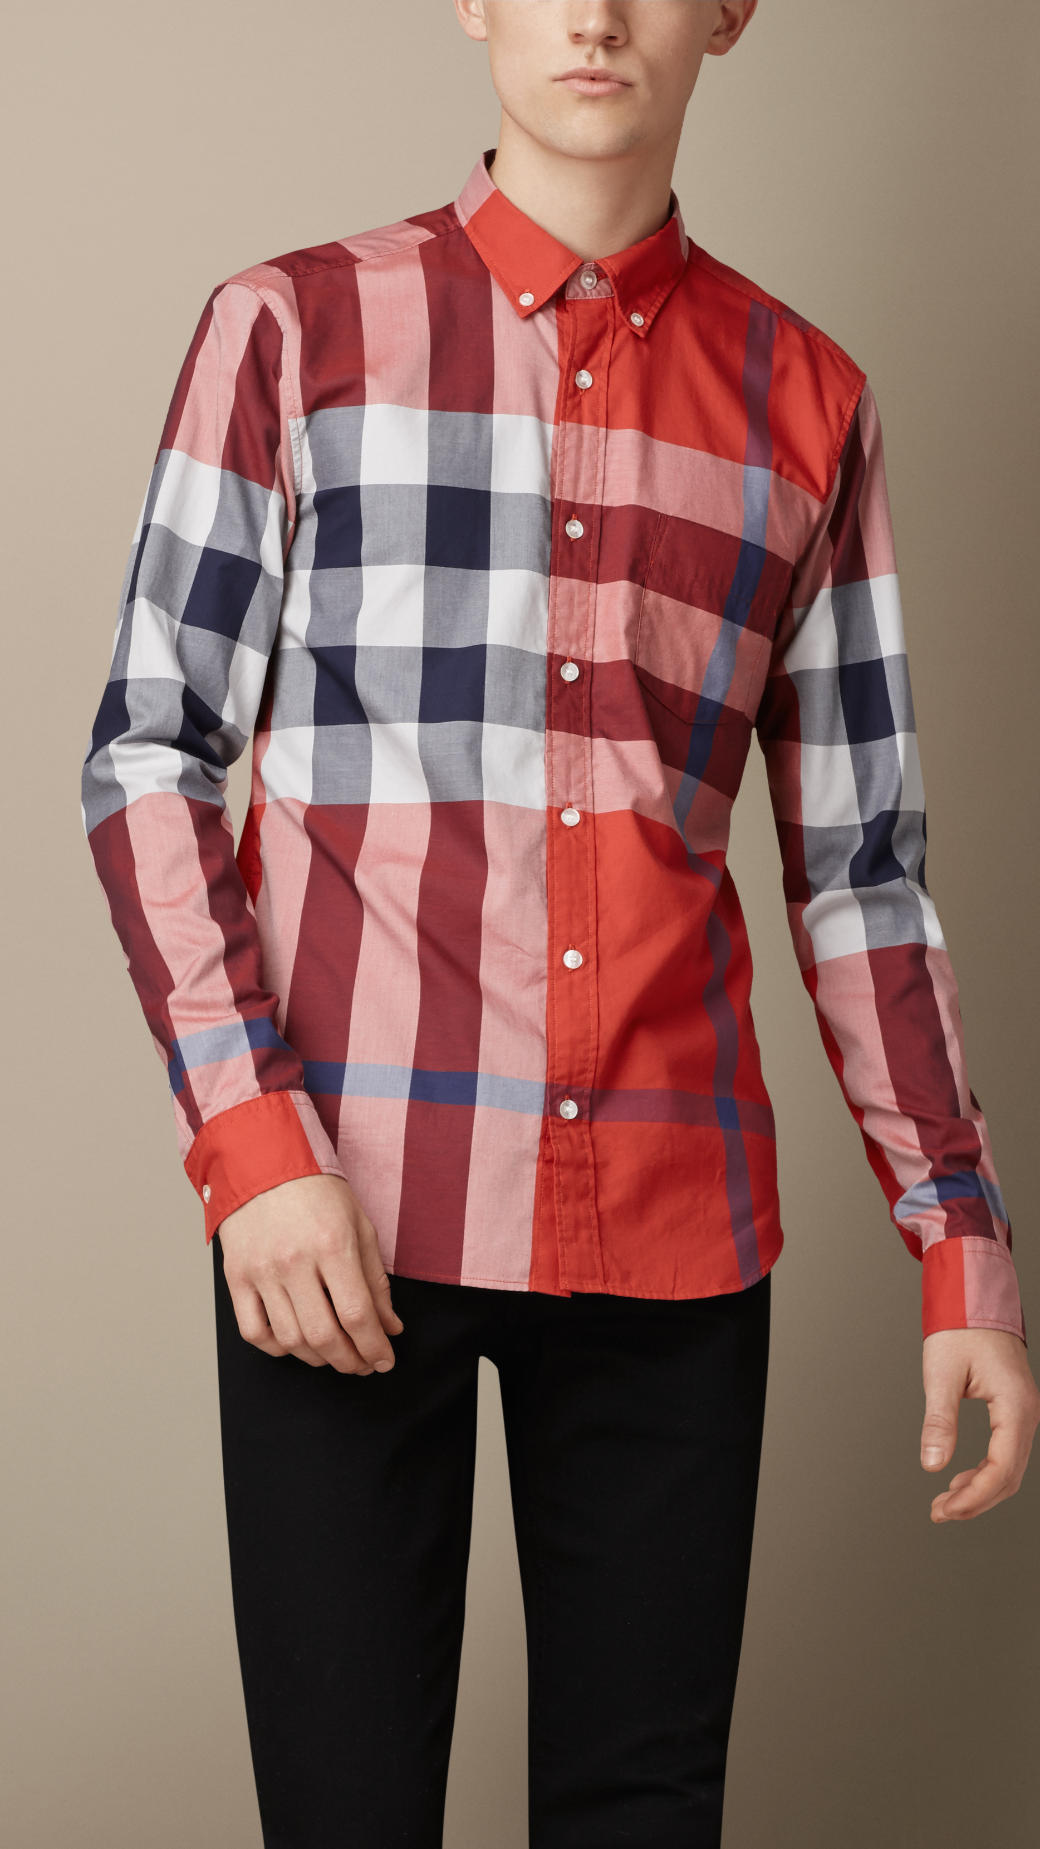 b0a0a59570cb Lyst - Burberry Exploded Check Cotton Shirt for Men